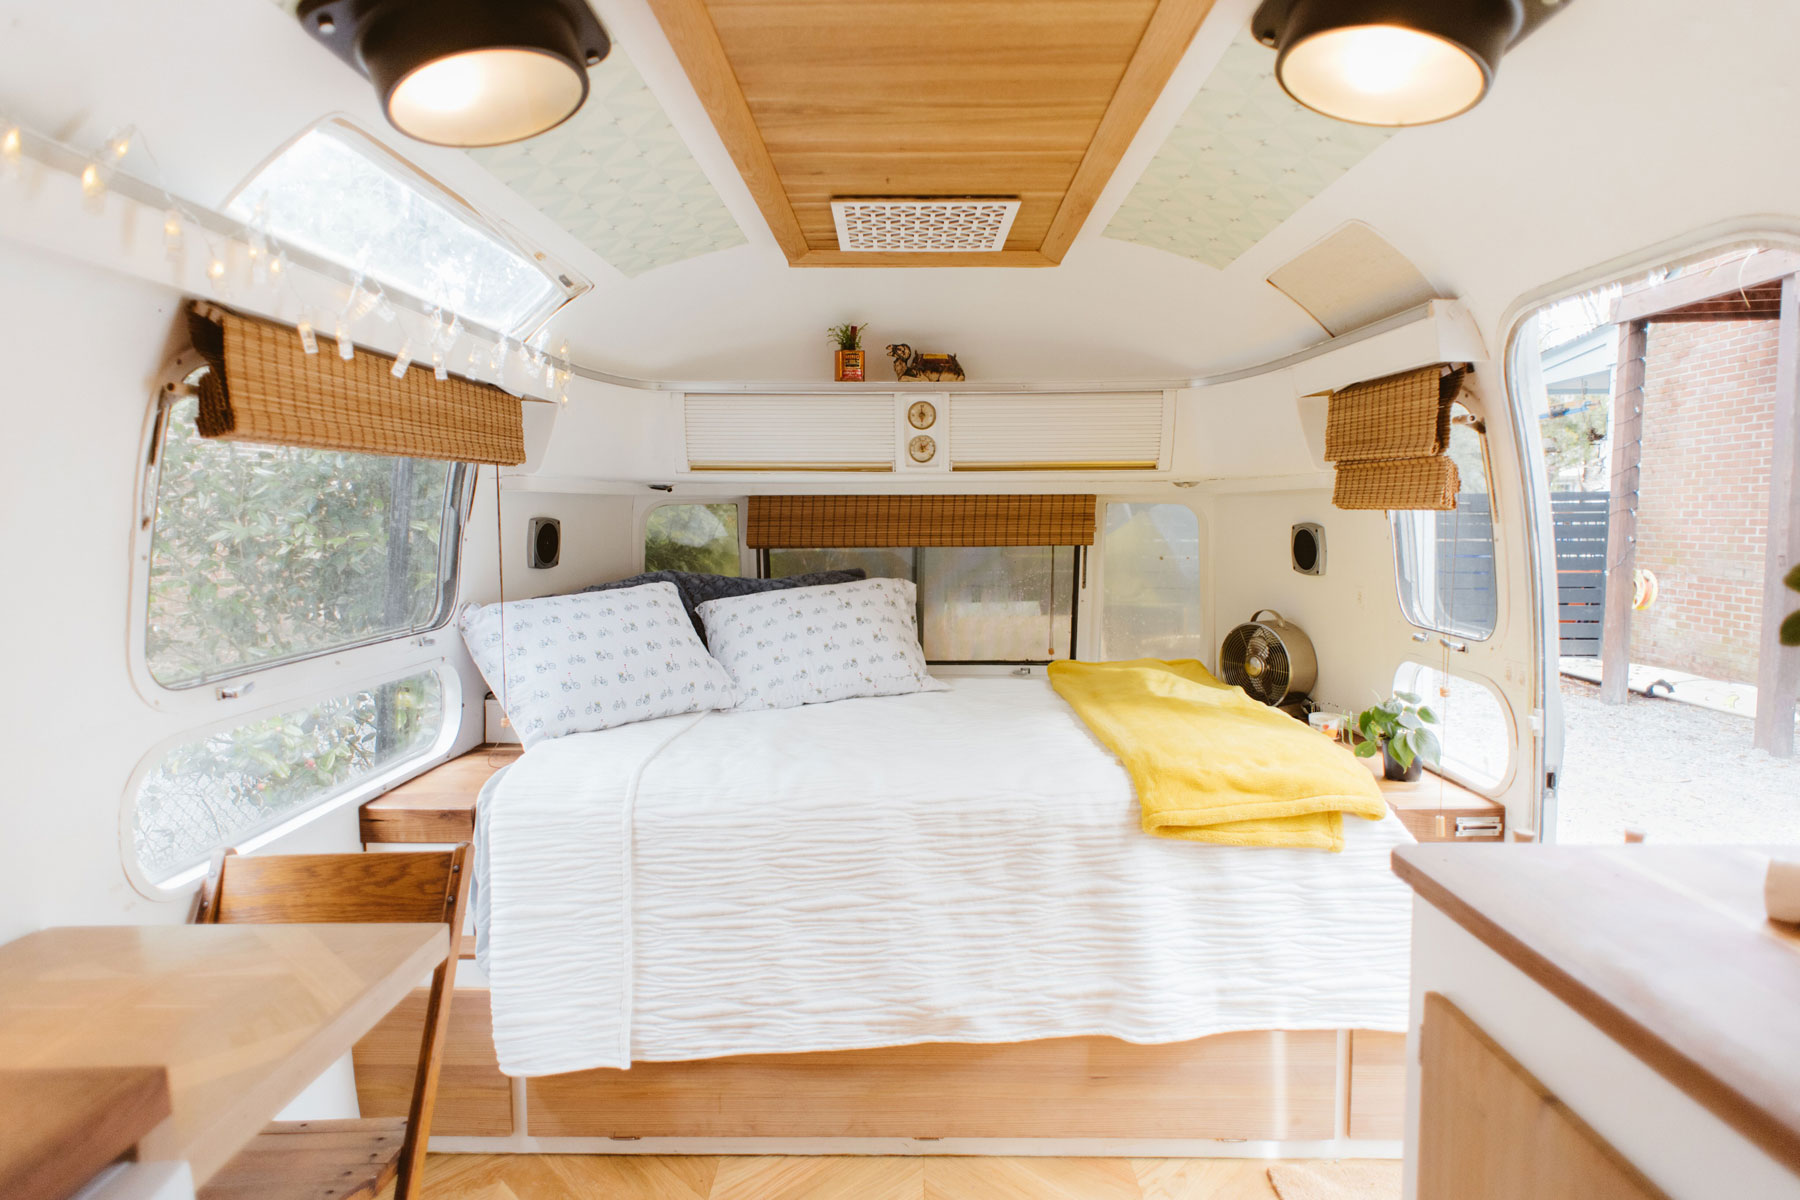 Bed and wooden accents in Airstream trailer